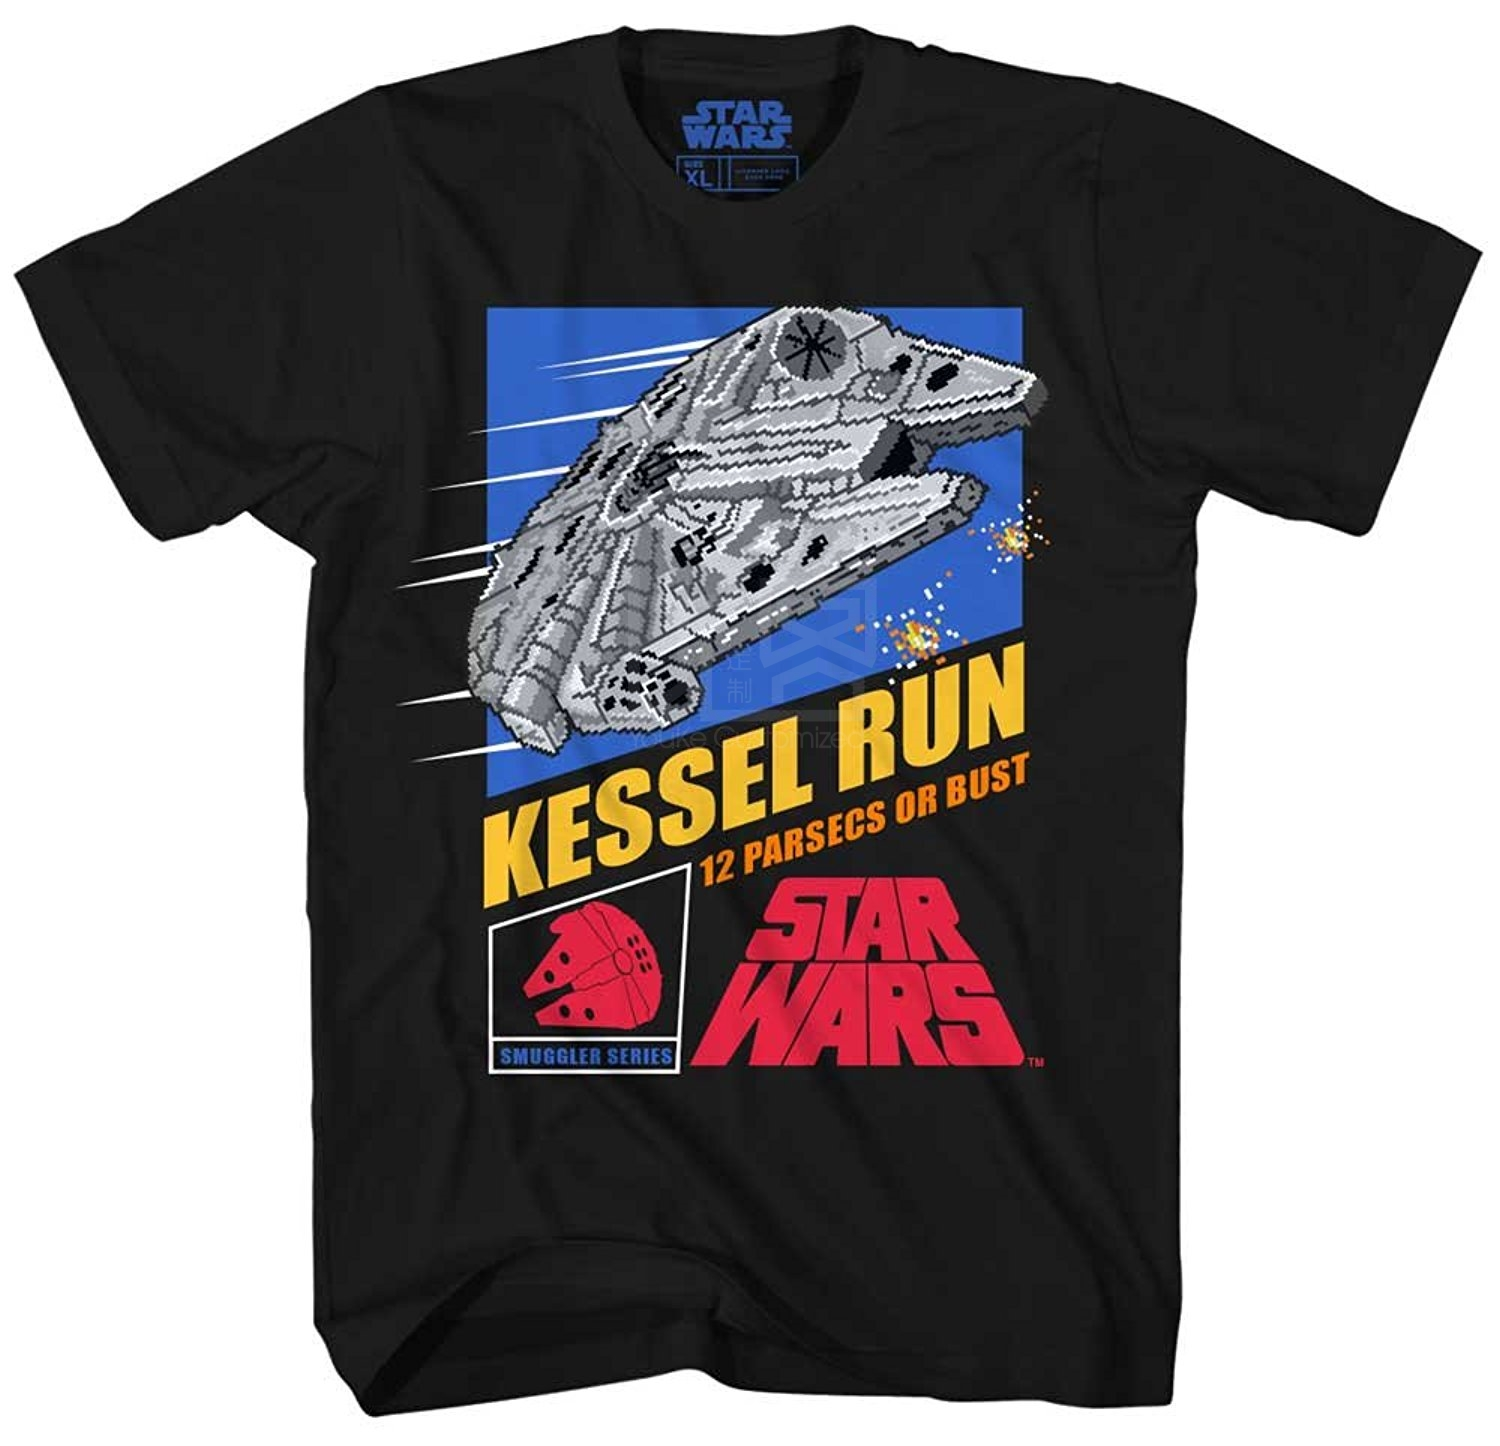 Star Wars Millennium Falcon Han Solo Chewbacca Chewie Kessel Runer Video Game Funny T Shirt Pun Mens Adult Graphic Tee T-shirt image